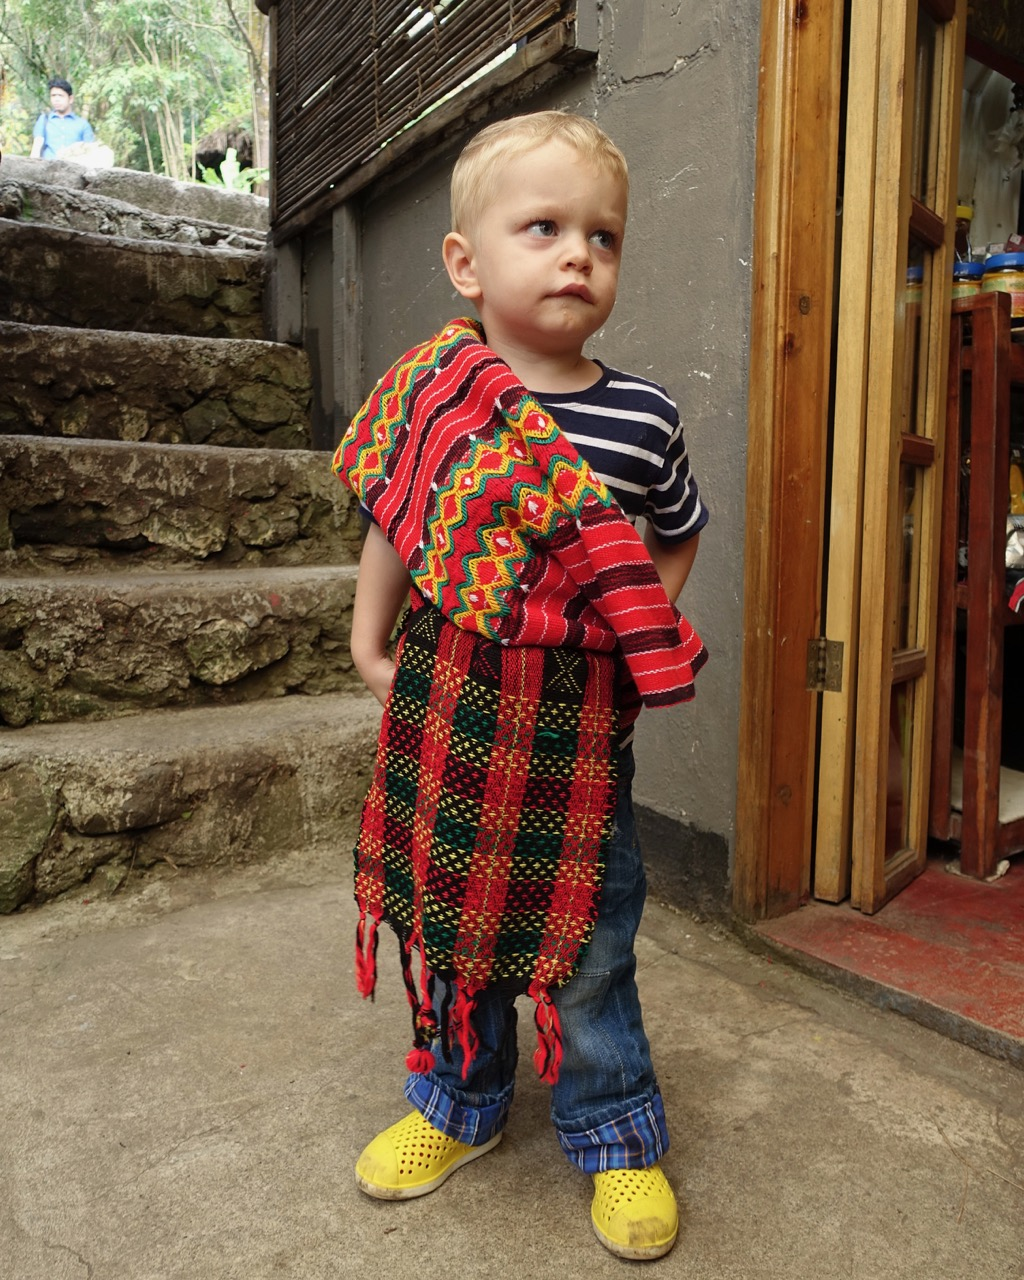 - I had to sneak a photo of toddler Ozzie as my baby igorot during our 10 day trip of Ilocos + Baguio.